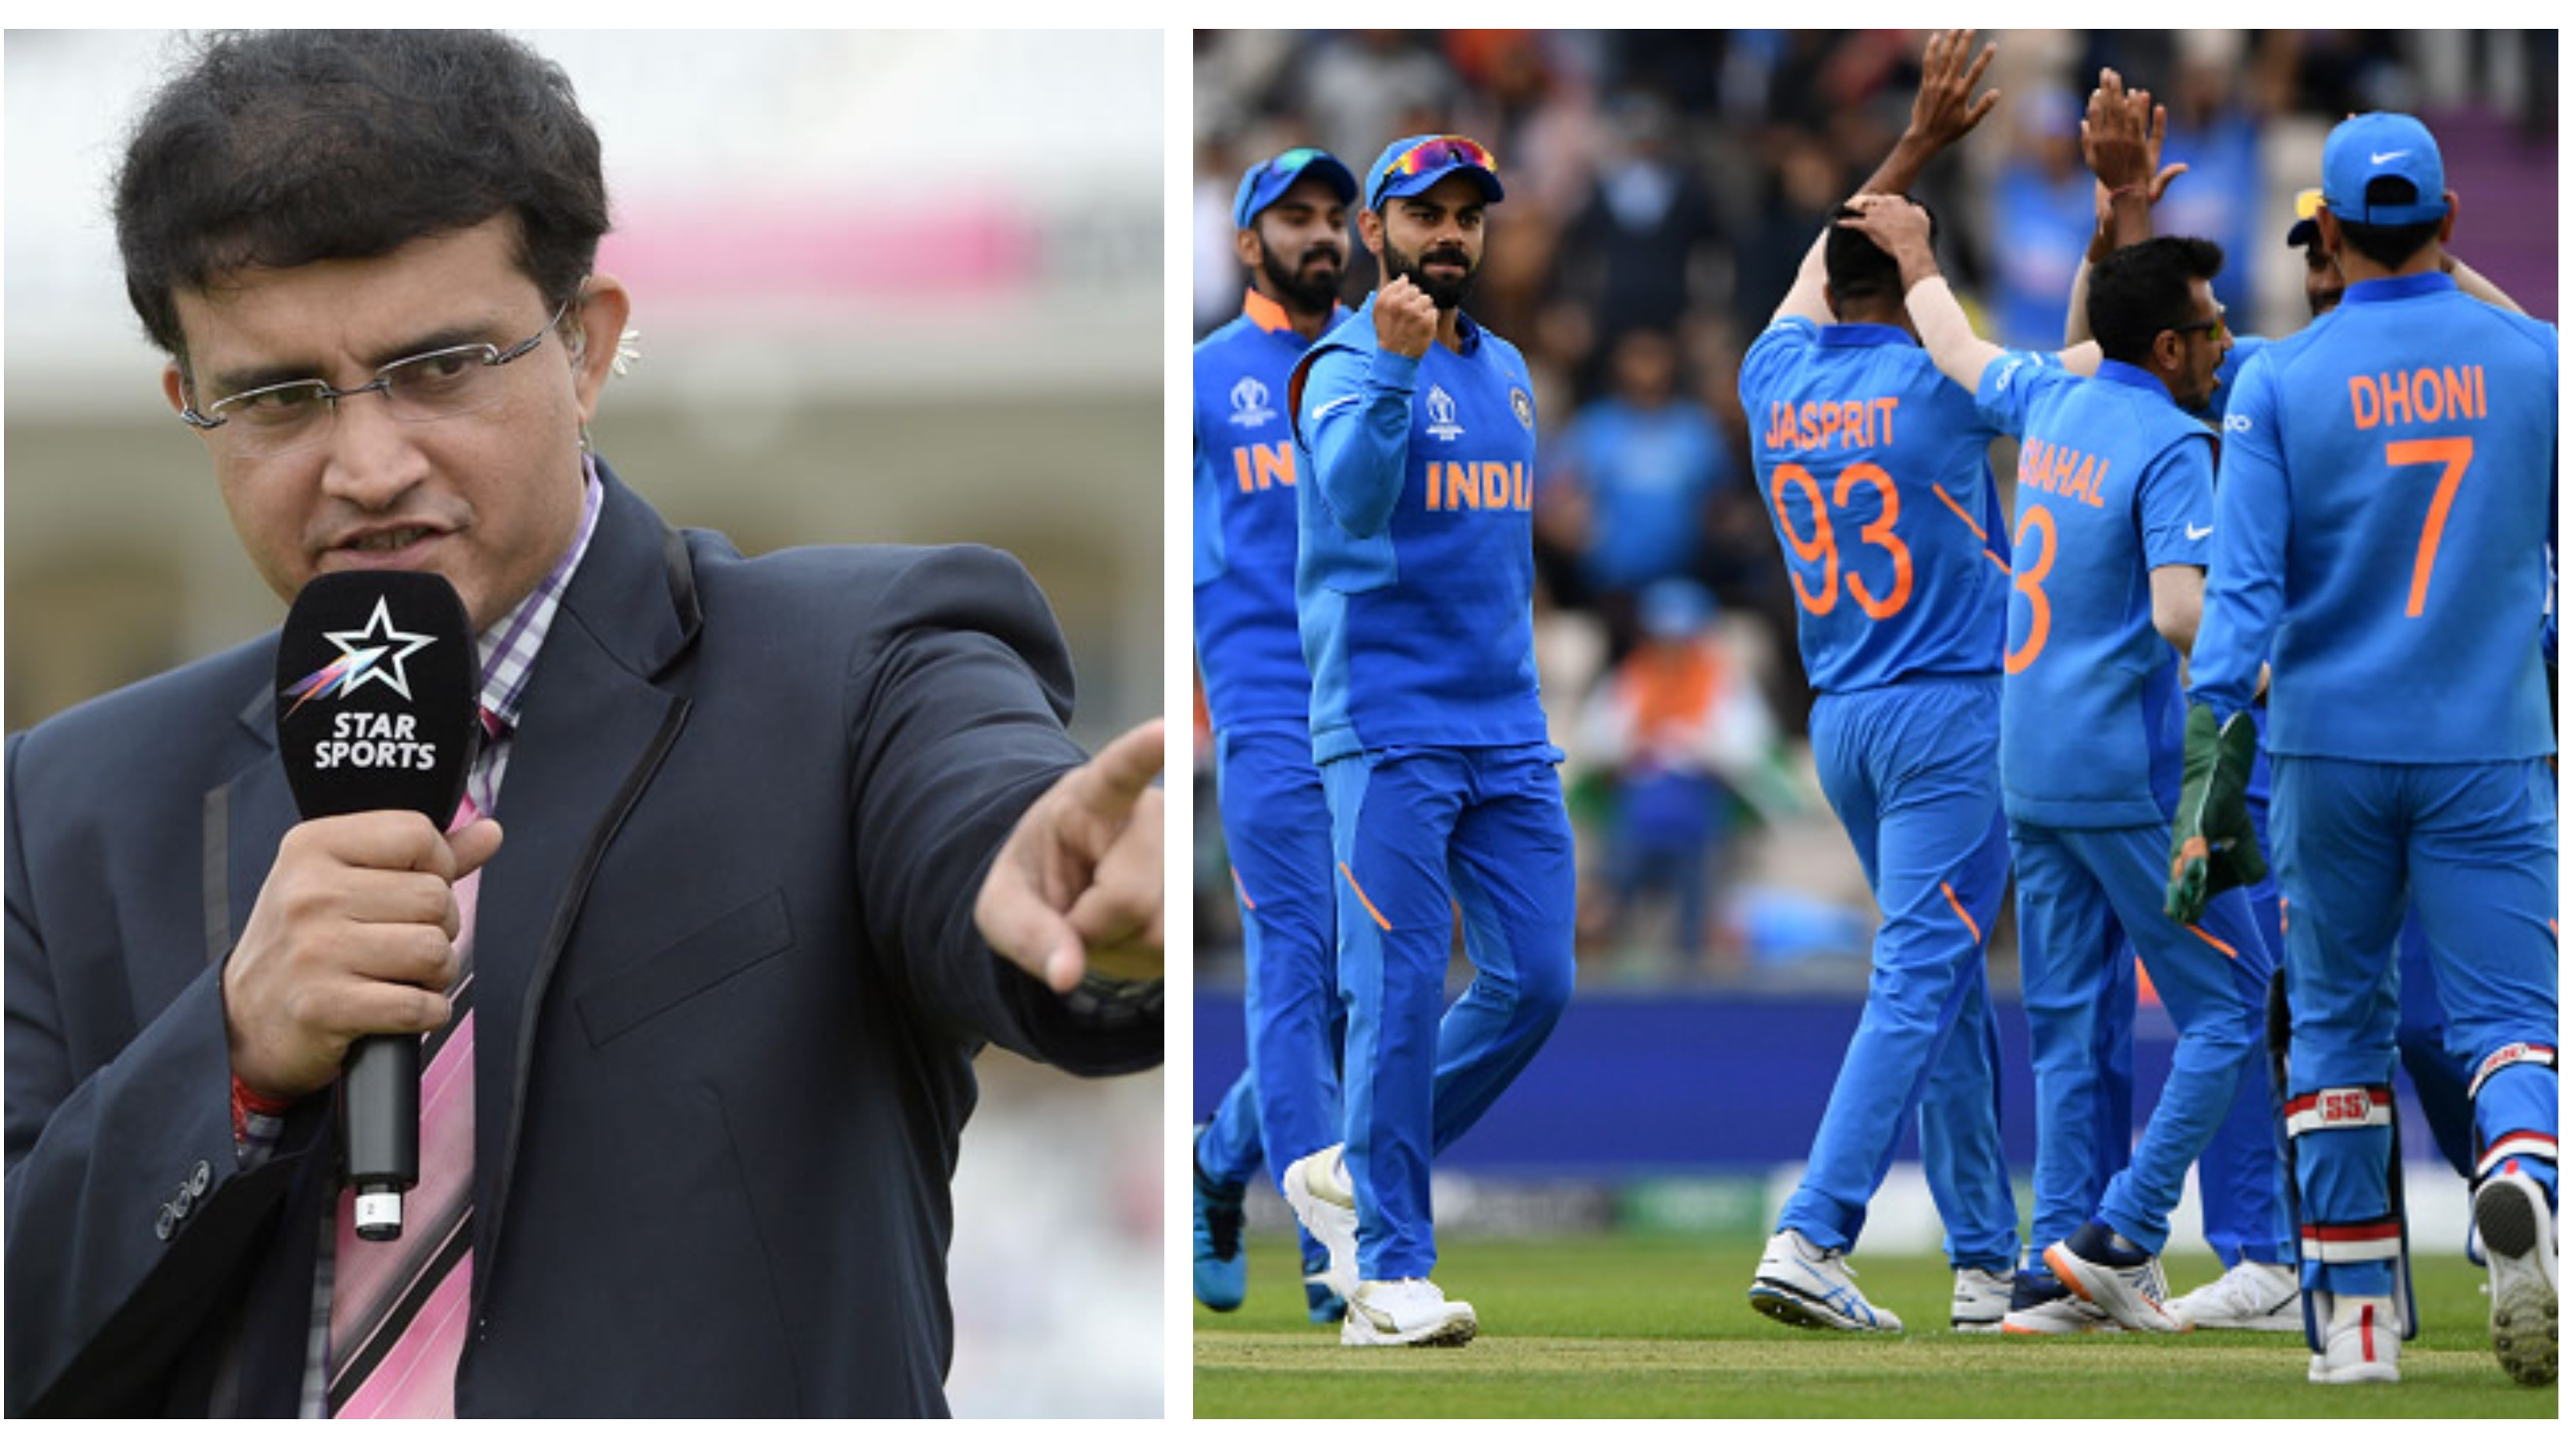 CWC 2019: Sourav Ganguly hails India as the best side in this World Cup so far